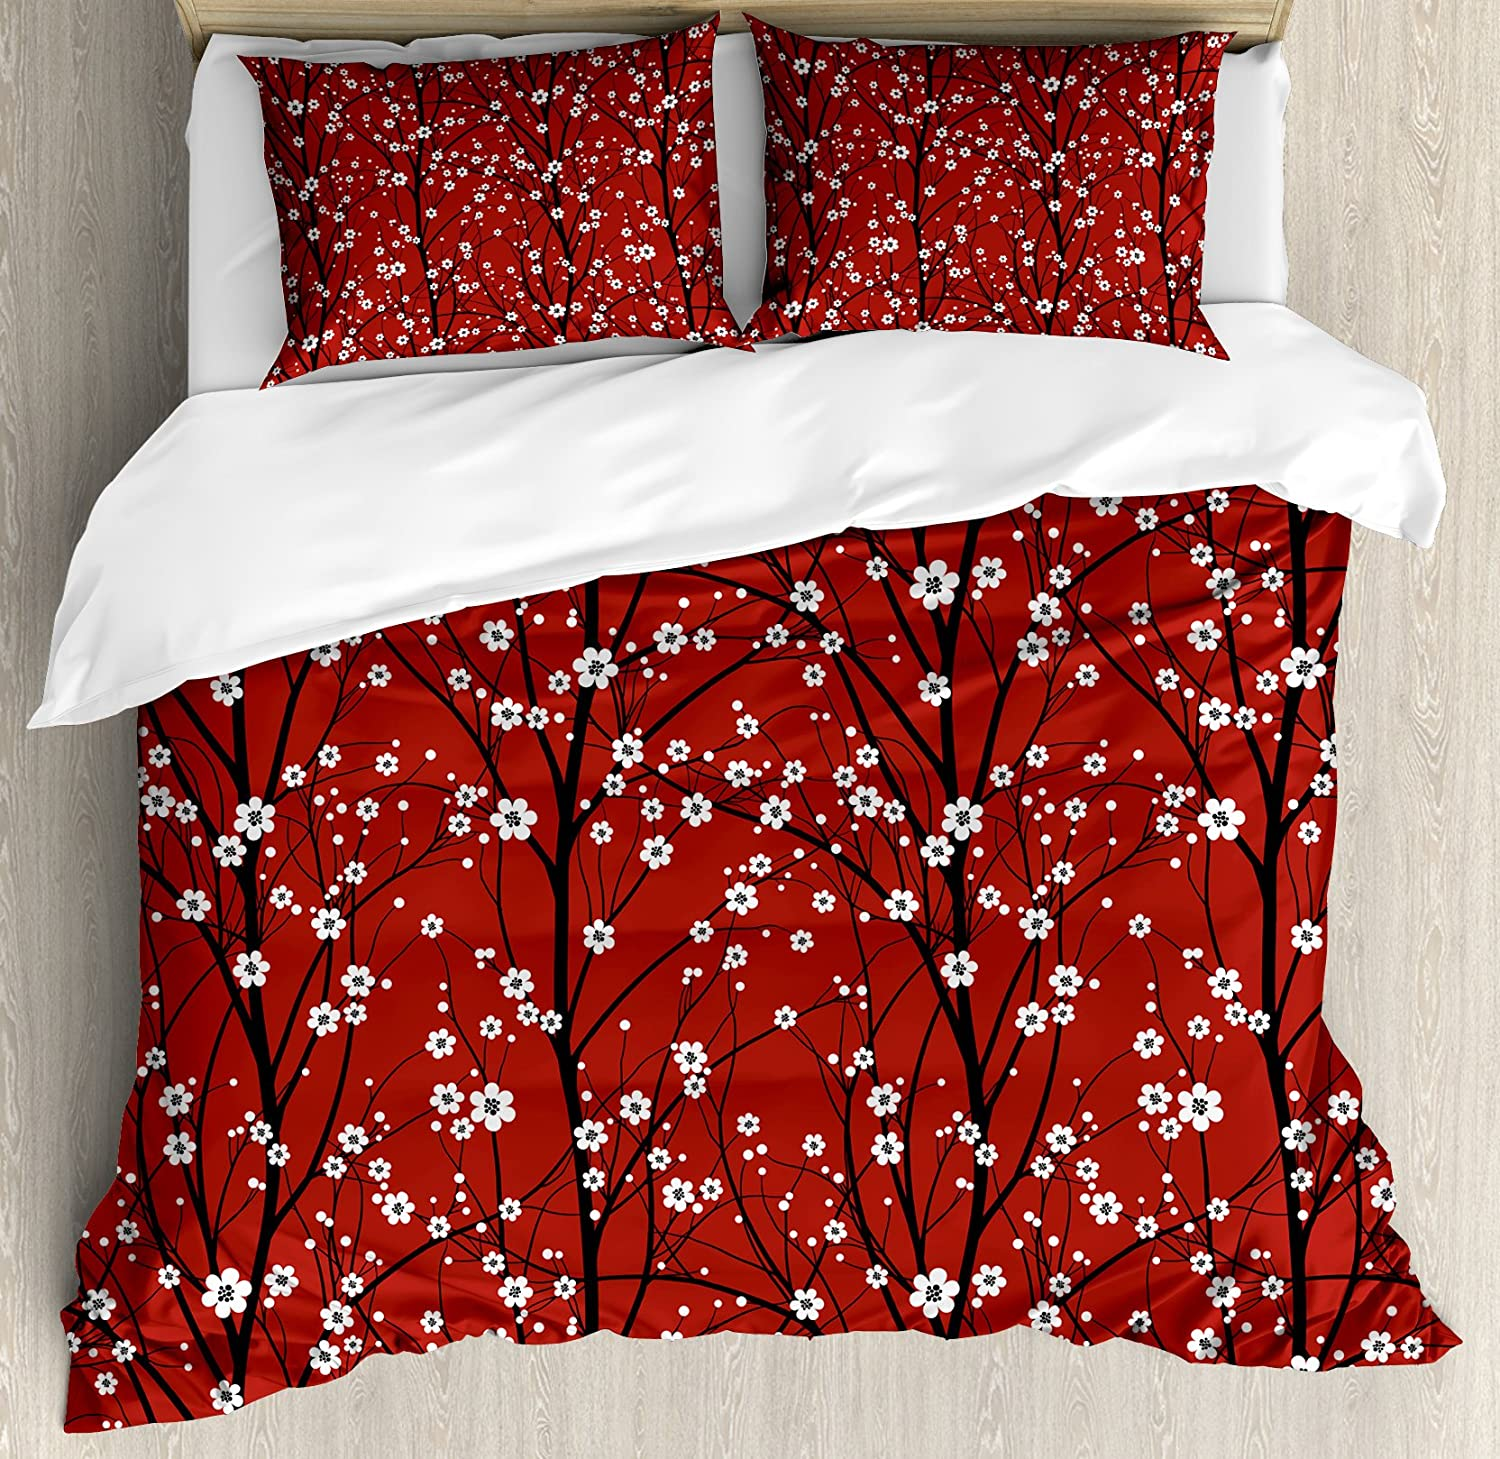 Lunarable Floral Duvet Cover Set, Cherry Blossom Tree Branches Beauty Japanese Traditional Folk Eastern Petals, Decorative 3 Piece Bedding Set with 2 Pillow Shams, King Size, White Scarlet